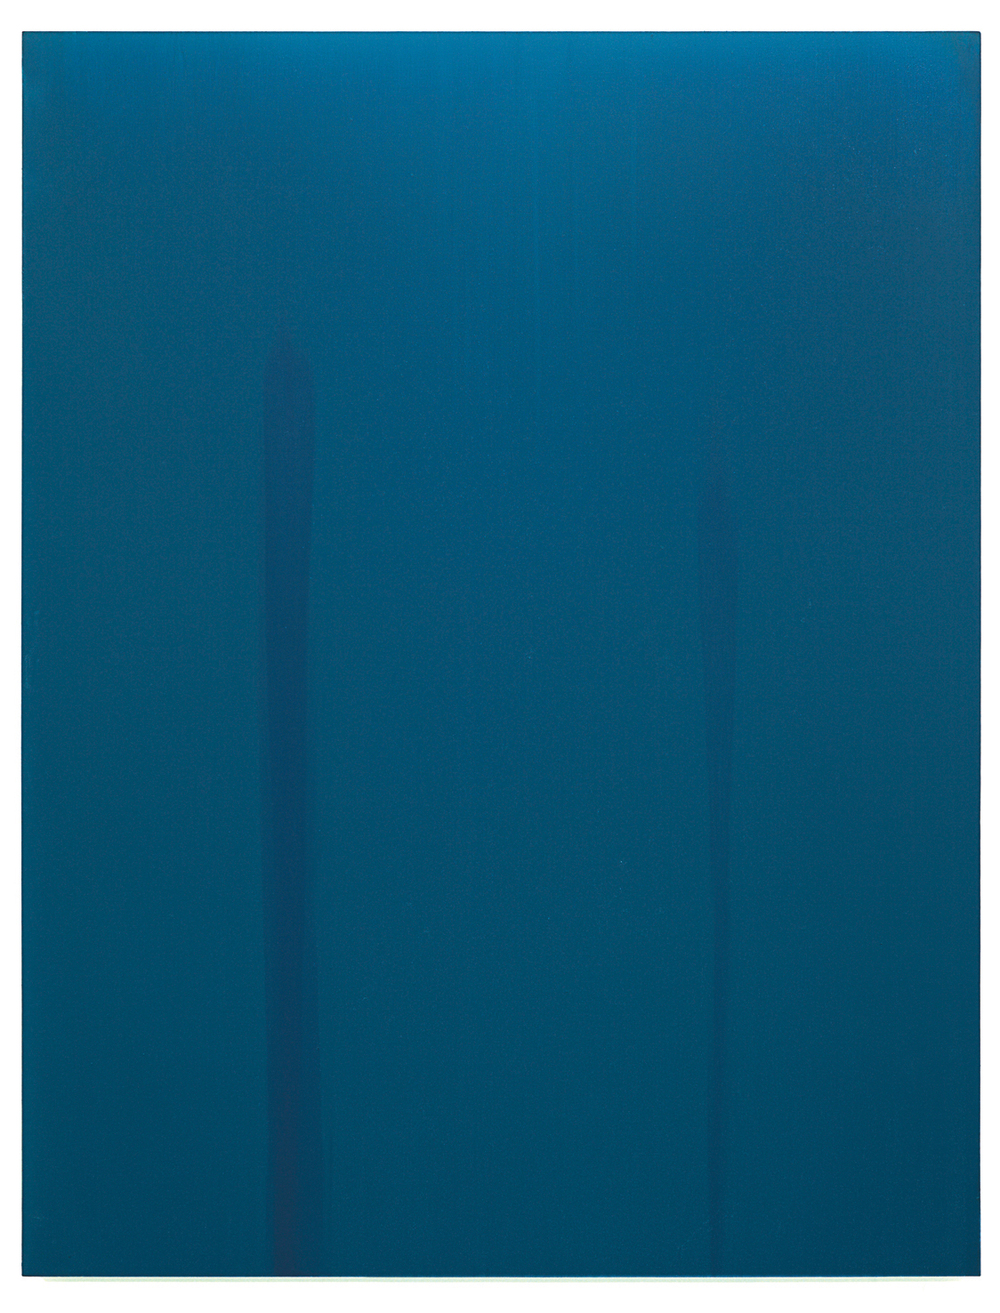 Luke HENG Blue on White no.2 2015 Oil on linen H150 x W115 x D5 cm